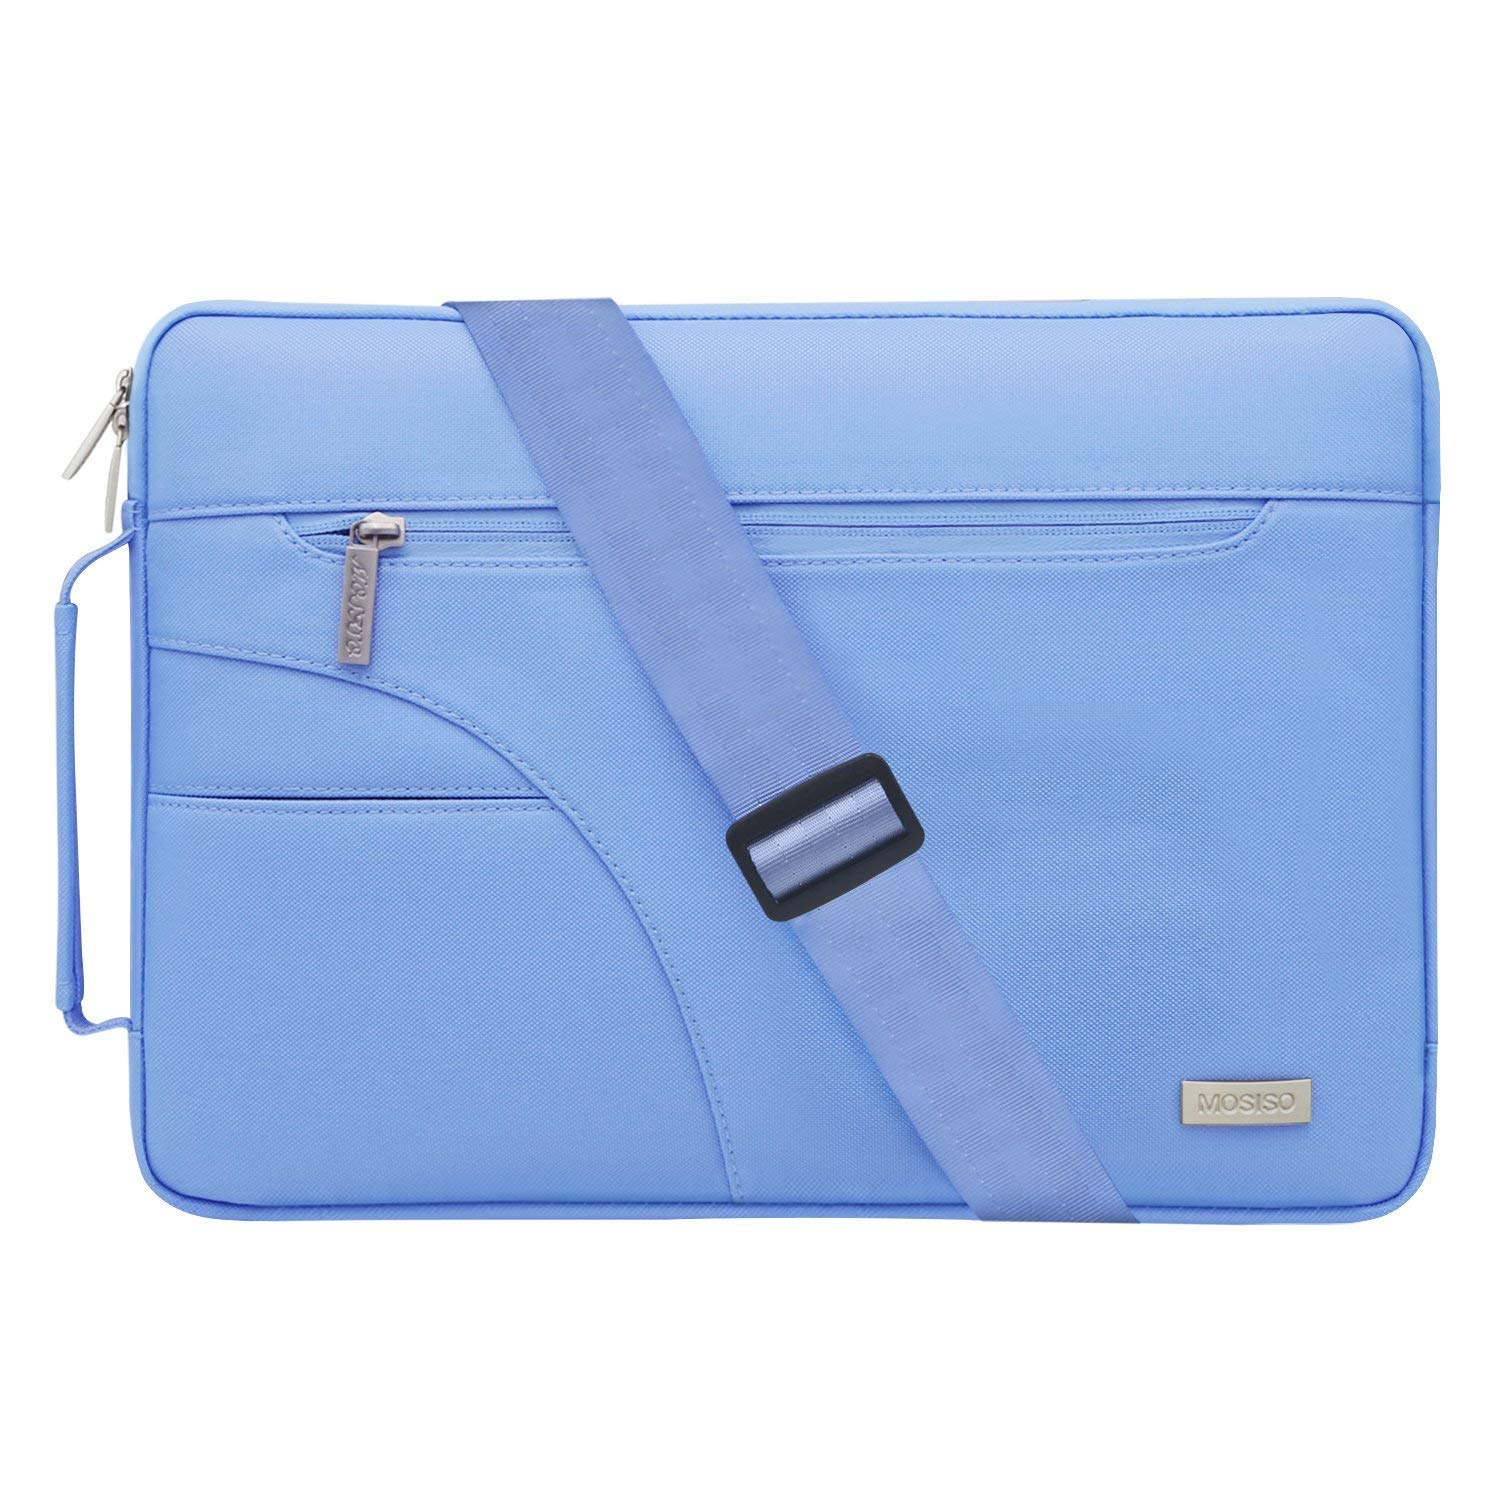 MOSISO Laptop Shoulder Bag Compatible 11-11.6 Inch MacBook Air, Ultrabook Netbook Tablet, Polyester Ultraportable Protective Briefcase Carrying Handbag Sleeve Case Cover, Black & Hot Blue